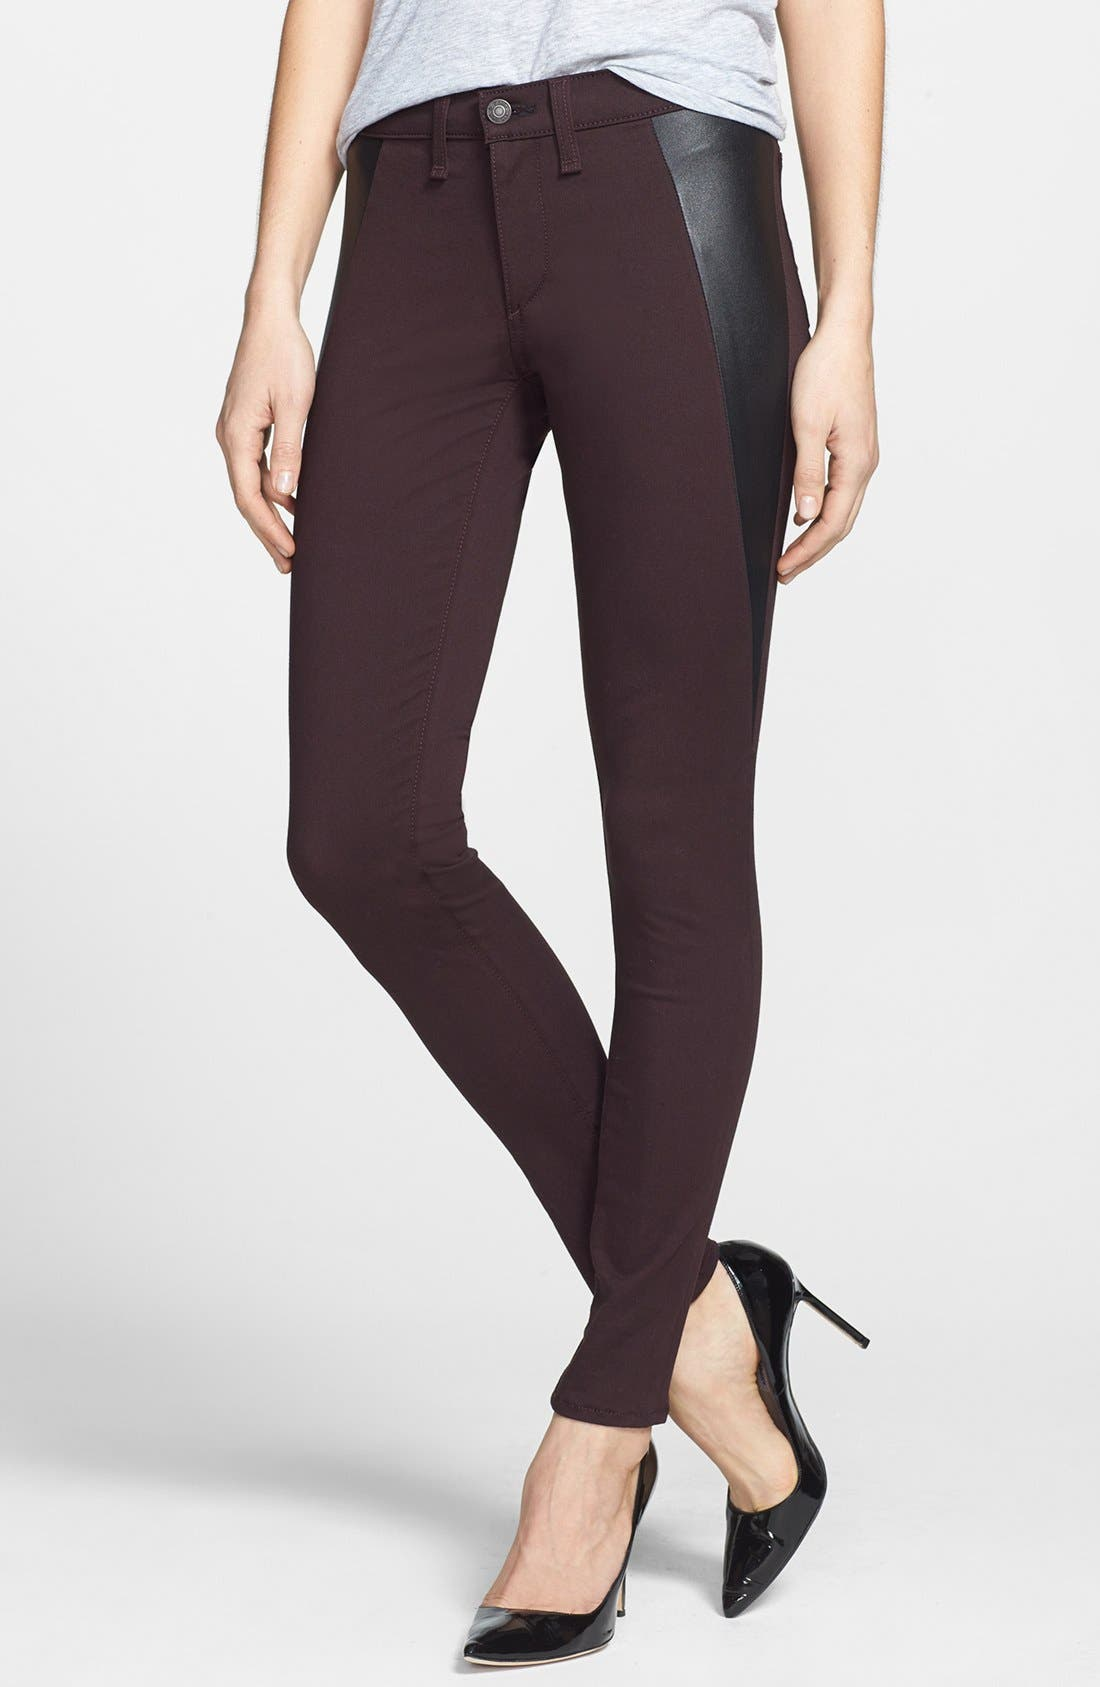 Alternate Image 1 Selected - rag & bone/JEAN 'Pop' Leather Inset Skinny Jeans (Wine)